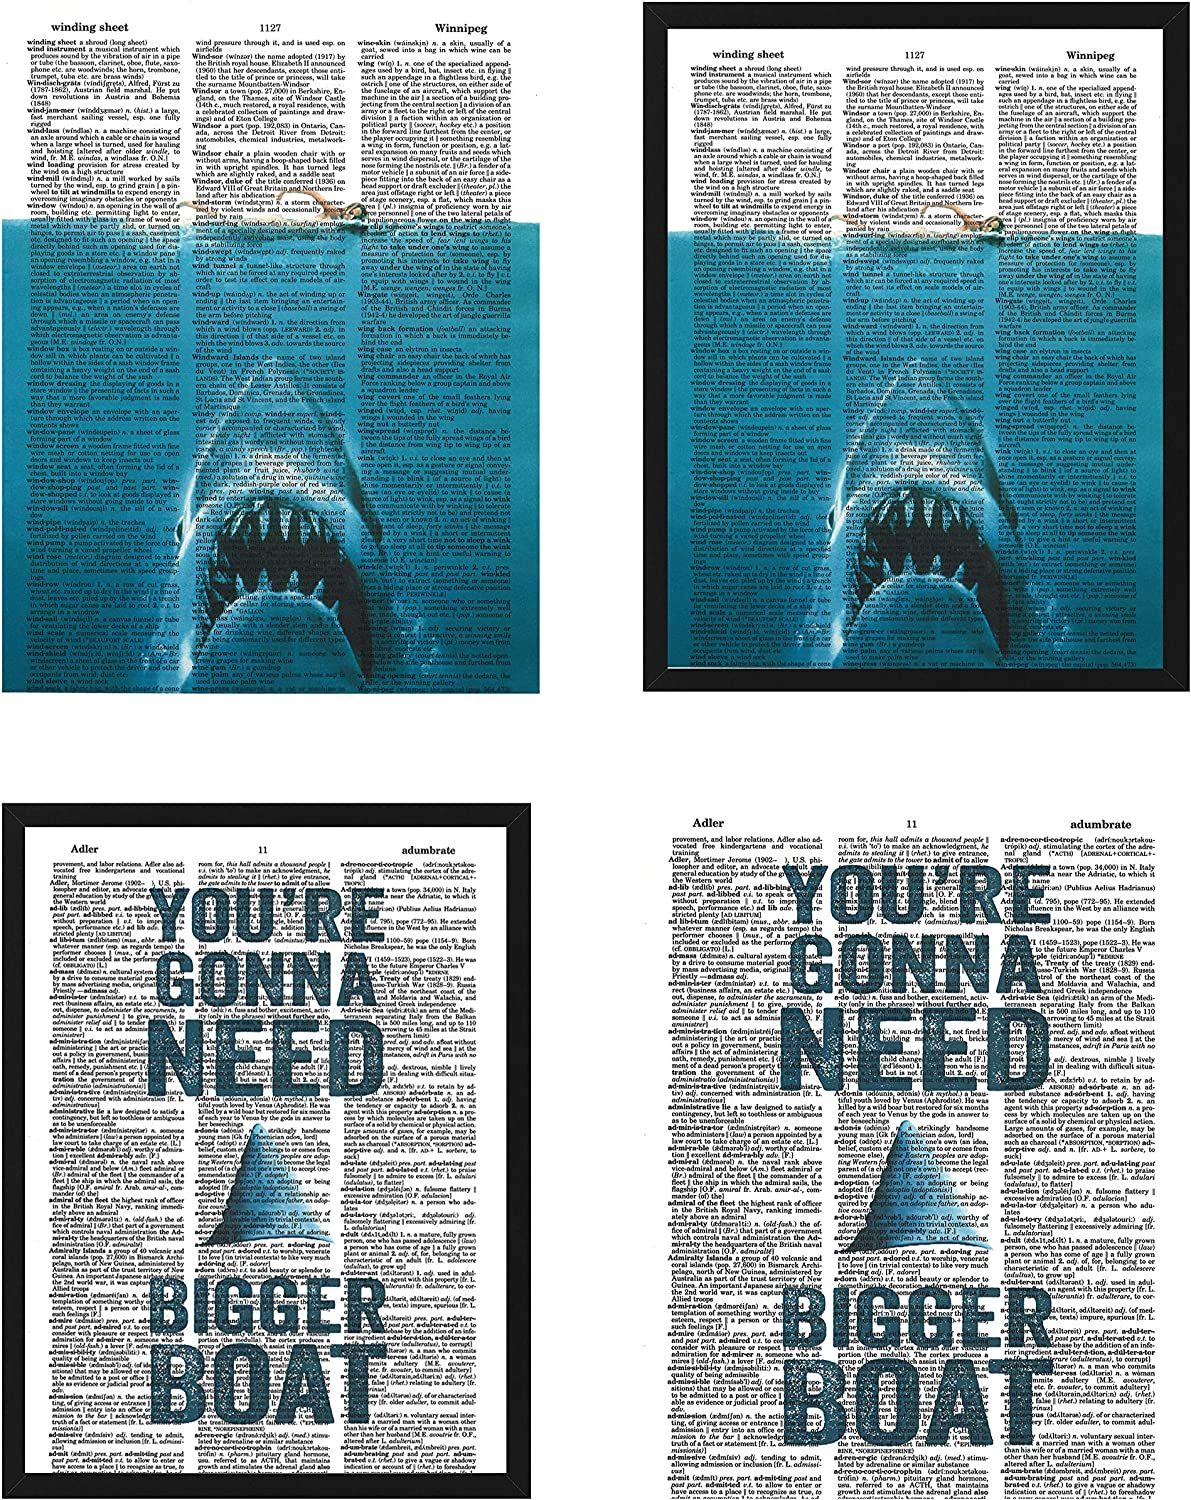 Jaws movie poster Great White Shark iconic movie quote set of (2) dictionary art prints wall decor 8x10